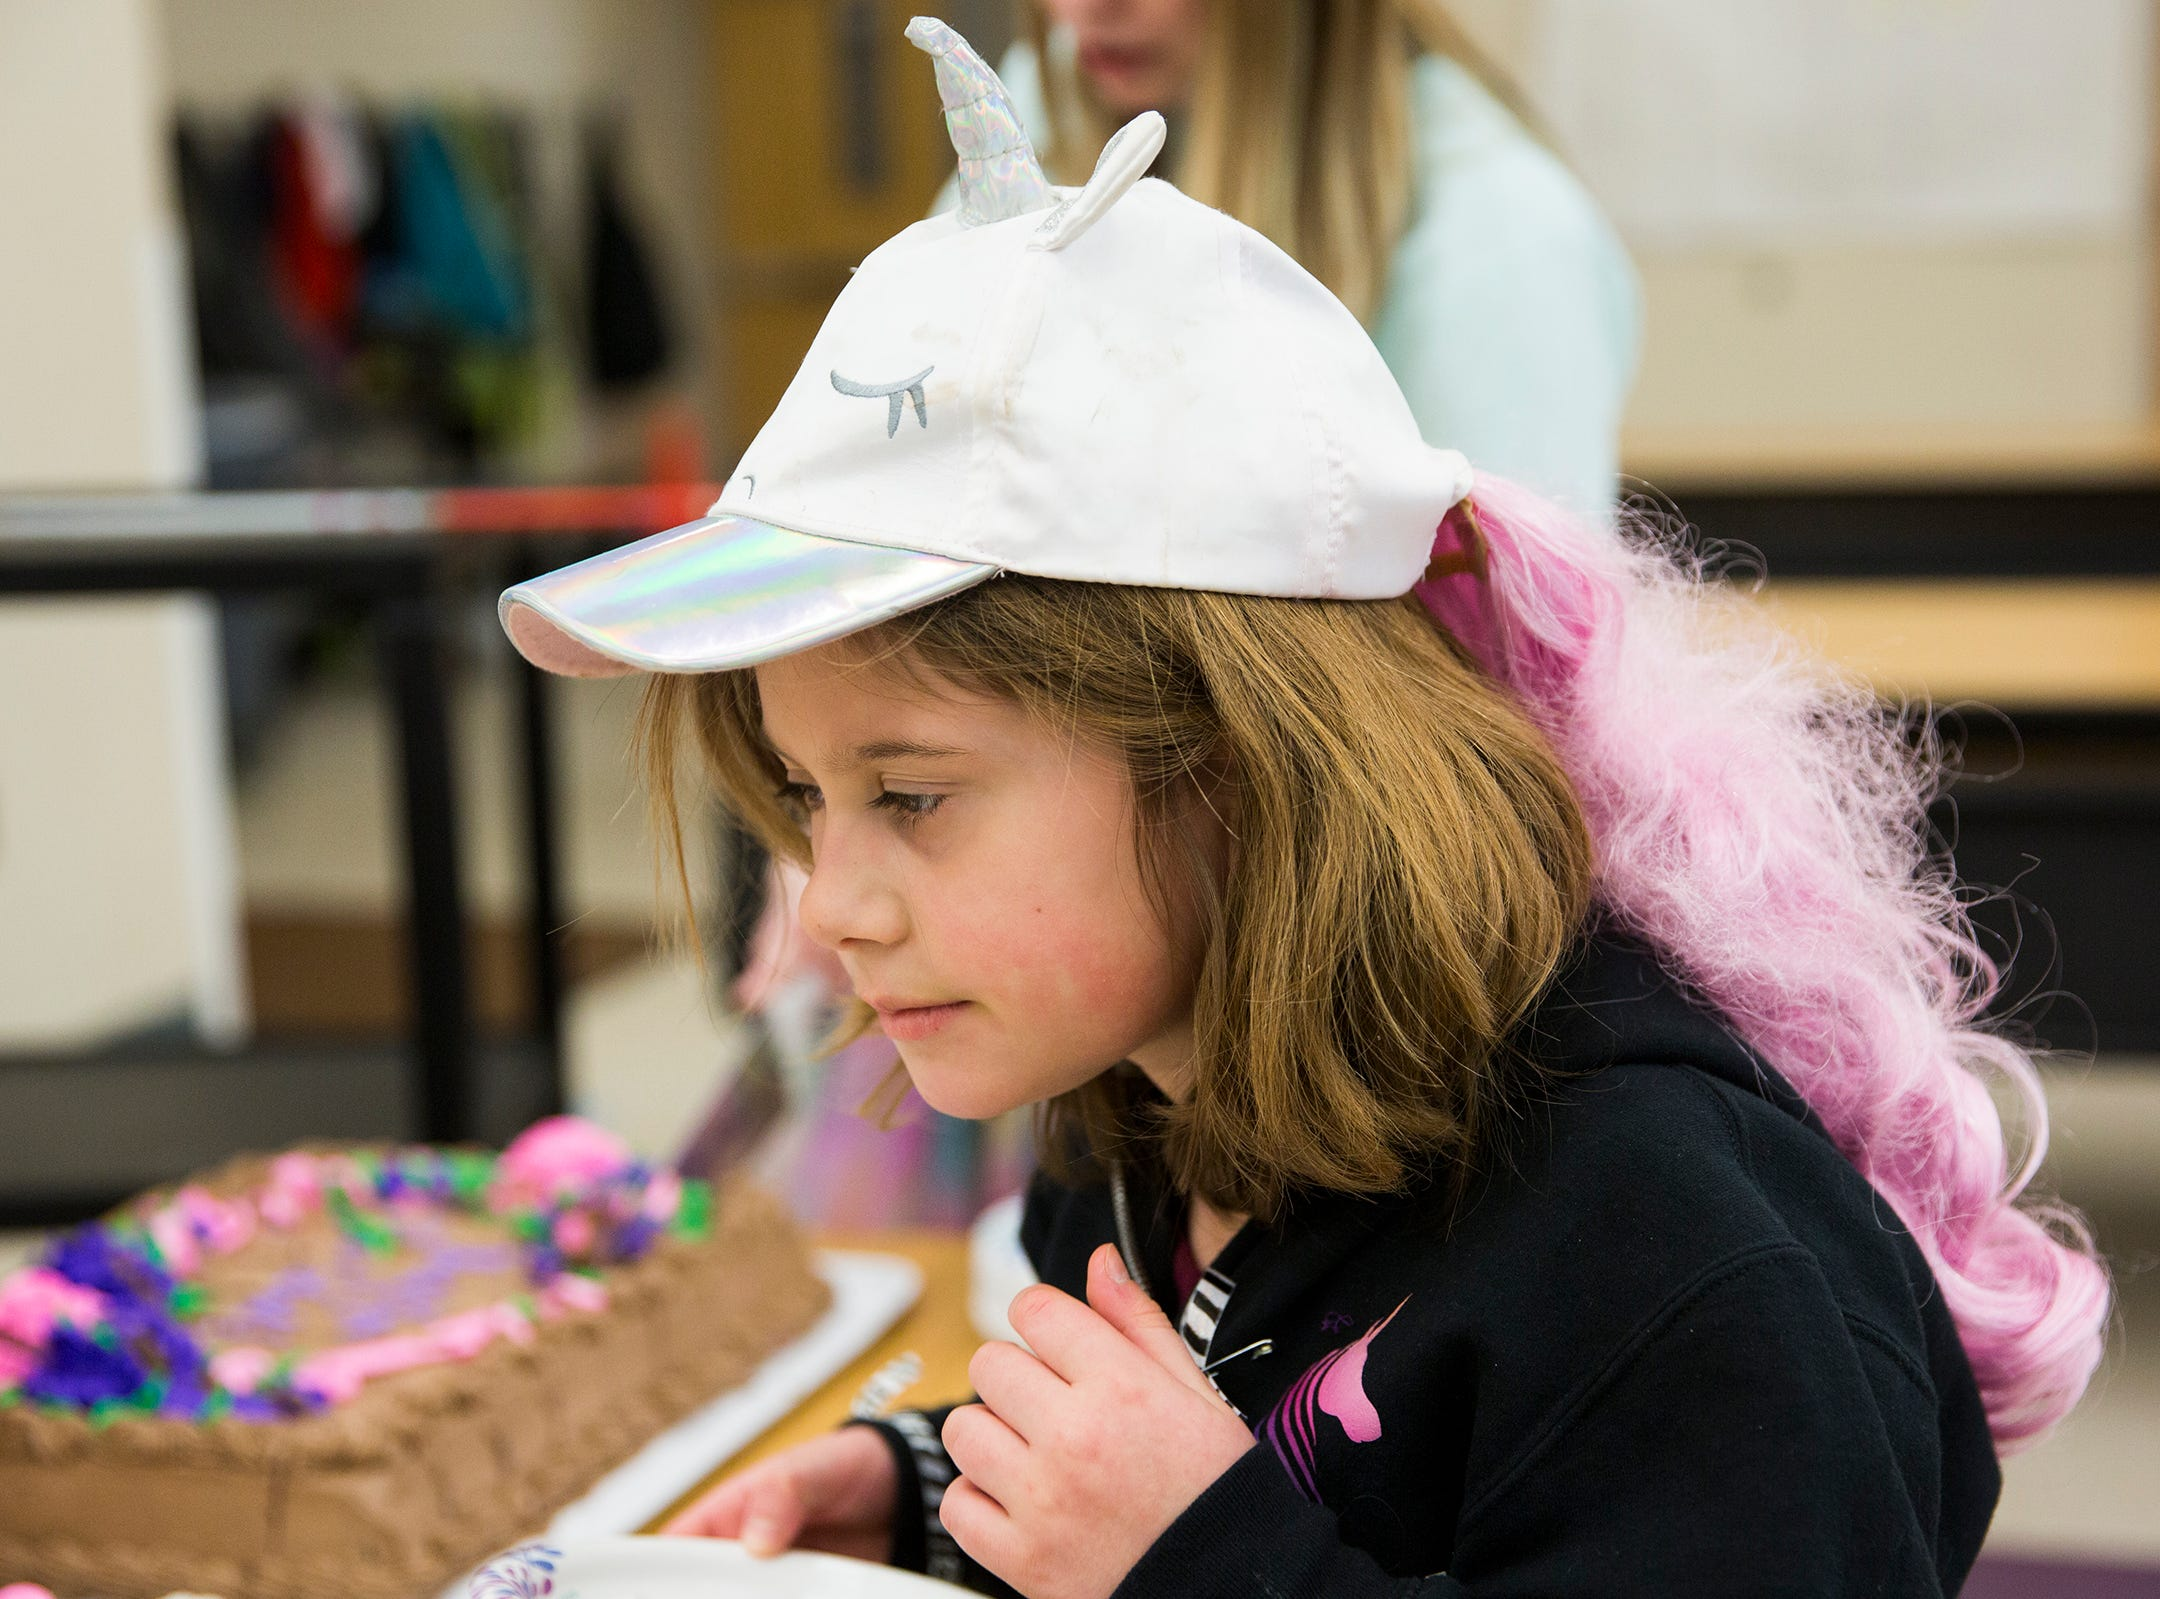 Haley Pollman, a third grader, helps serve cake on rare disease day at Lee Elementary School in Salem on Thursday, Feb. 28, 2019.